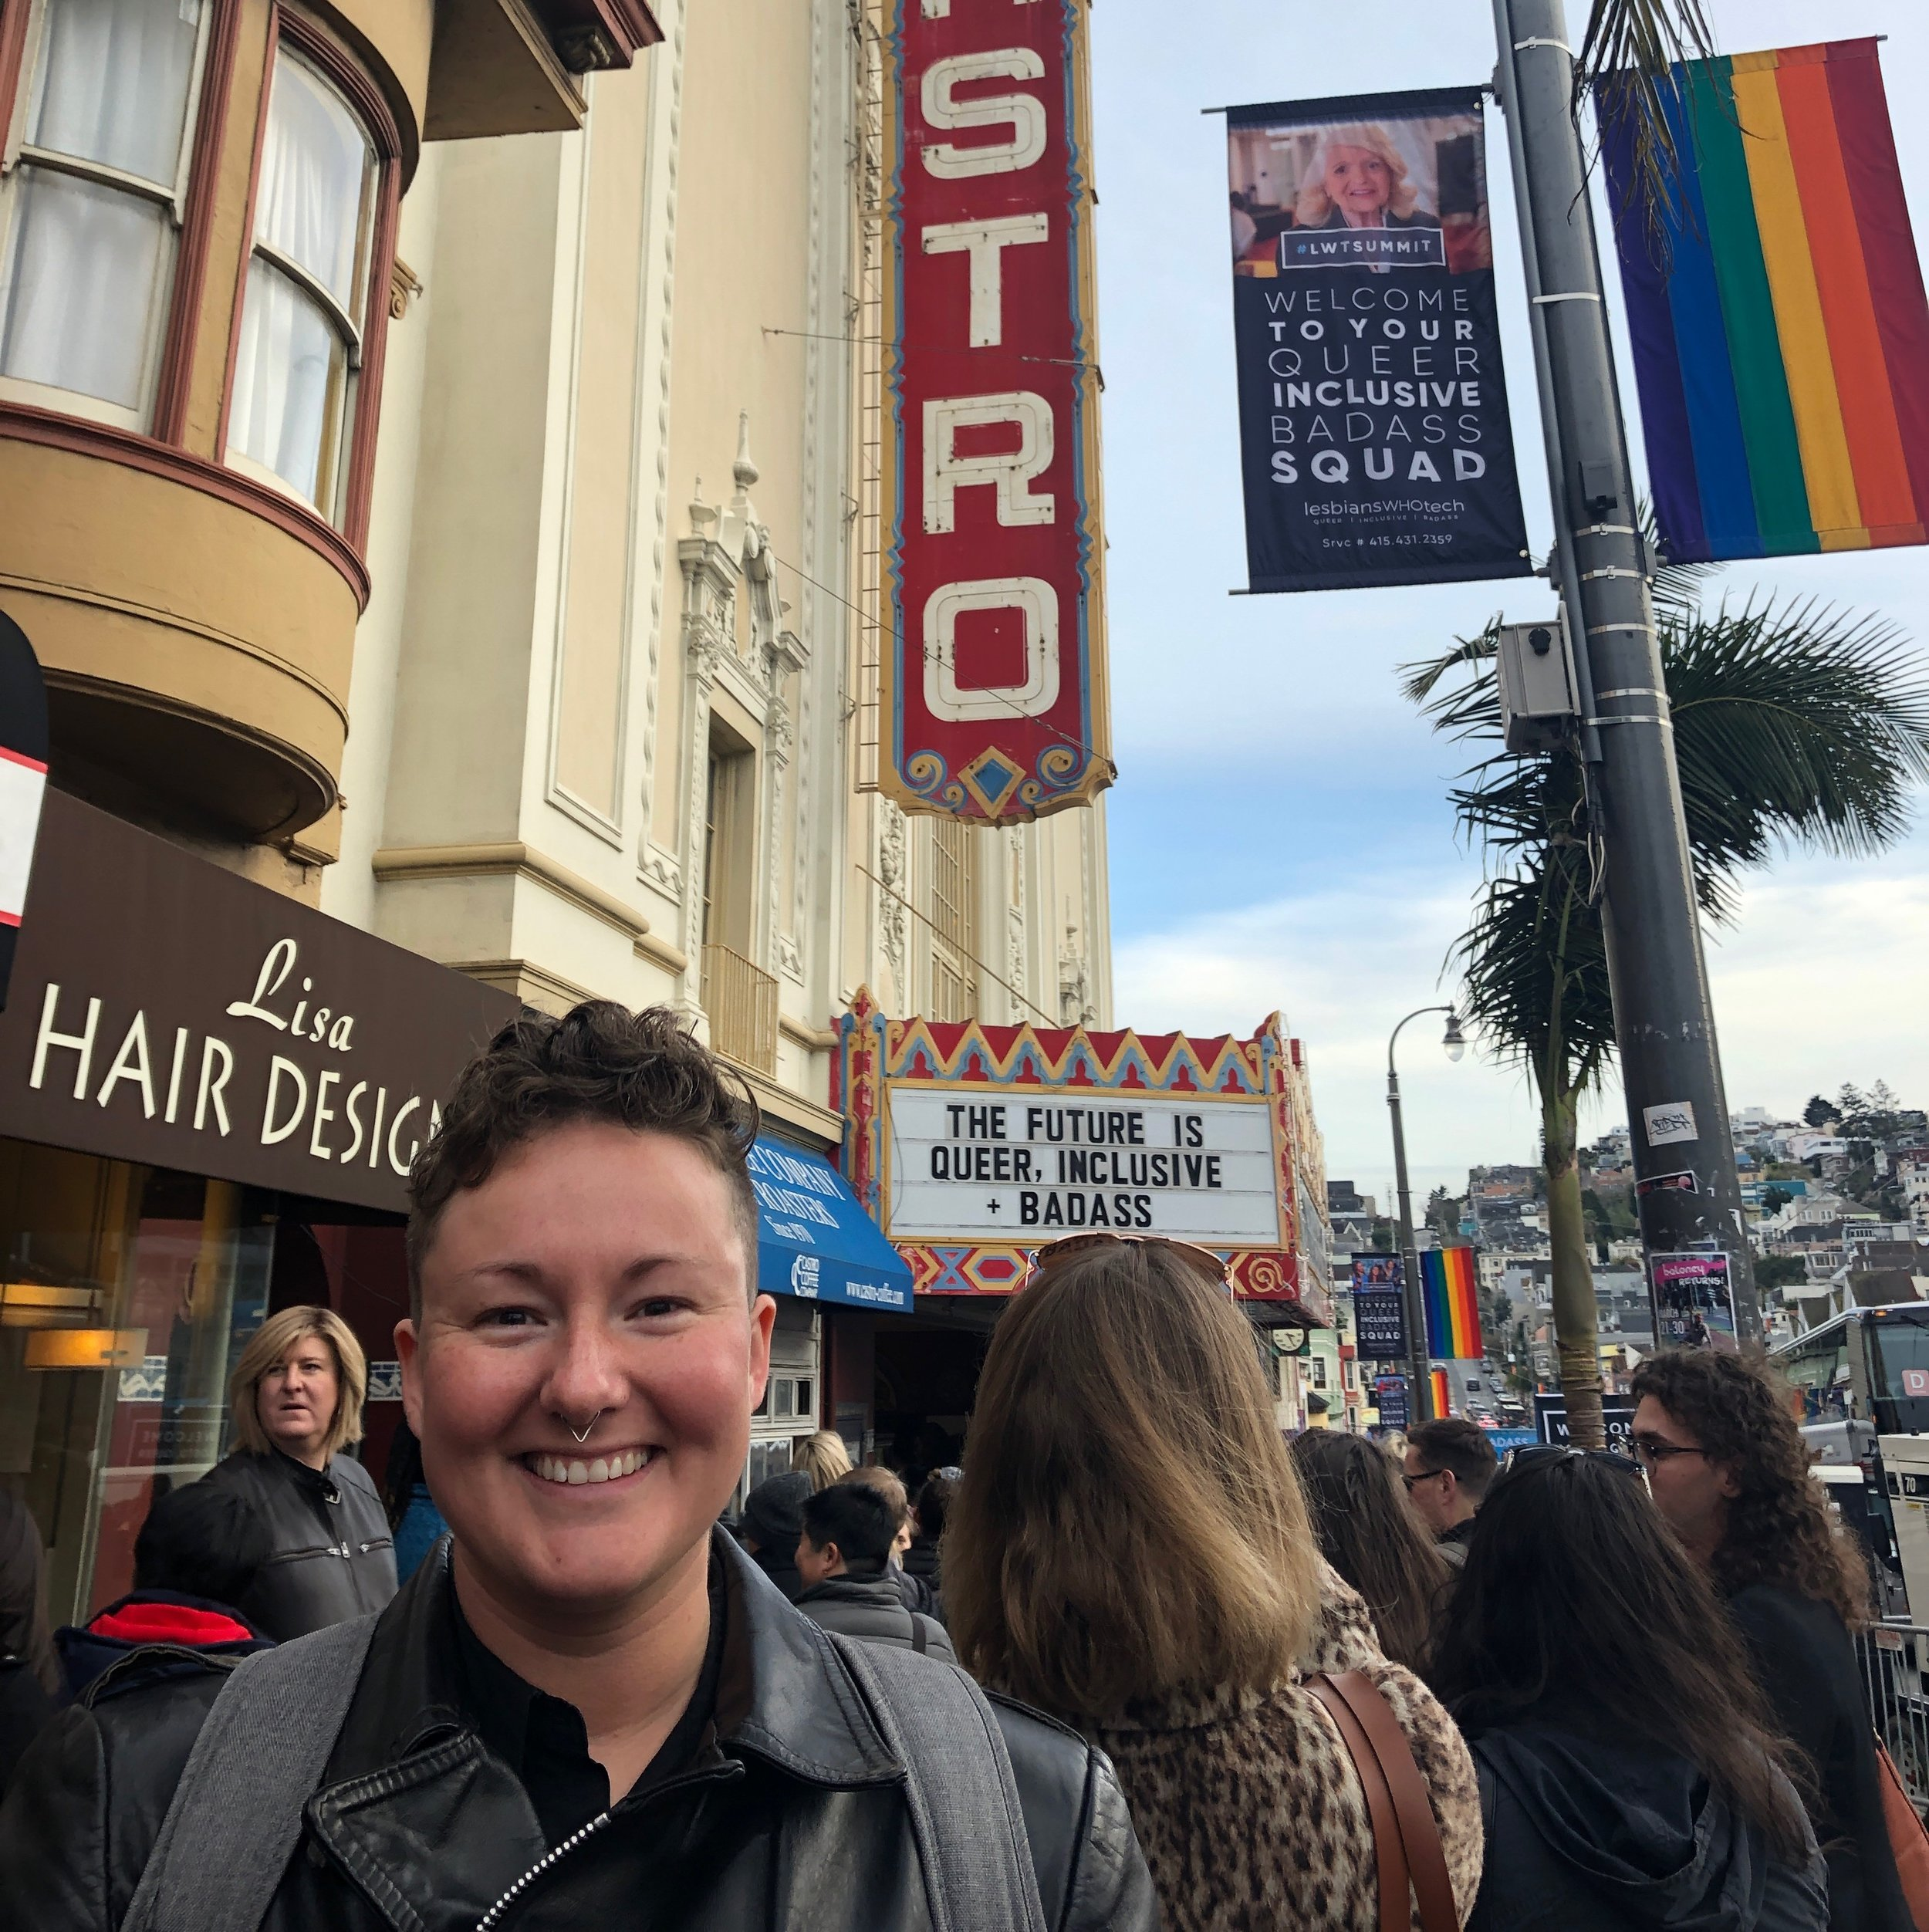 """RC standing in front of the Castro Theatre. The Castro's billboard reads: """"The Future is Queer, Inclusive, Badass."""""""